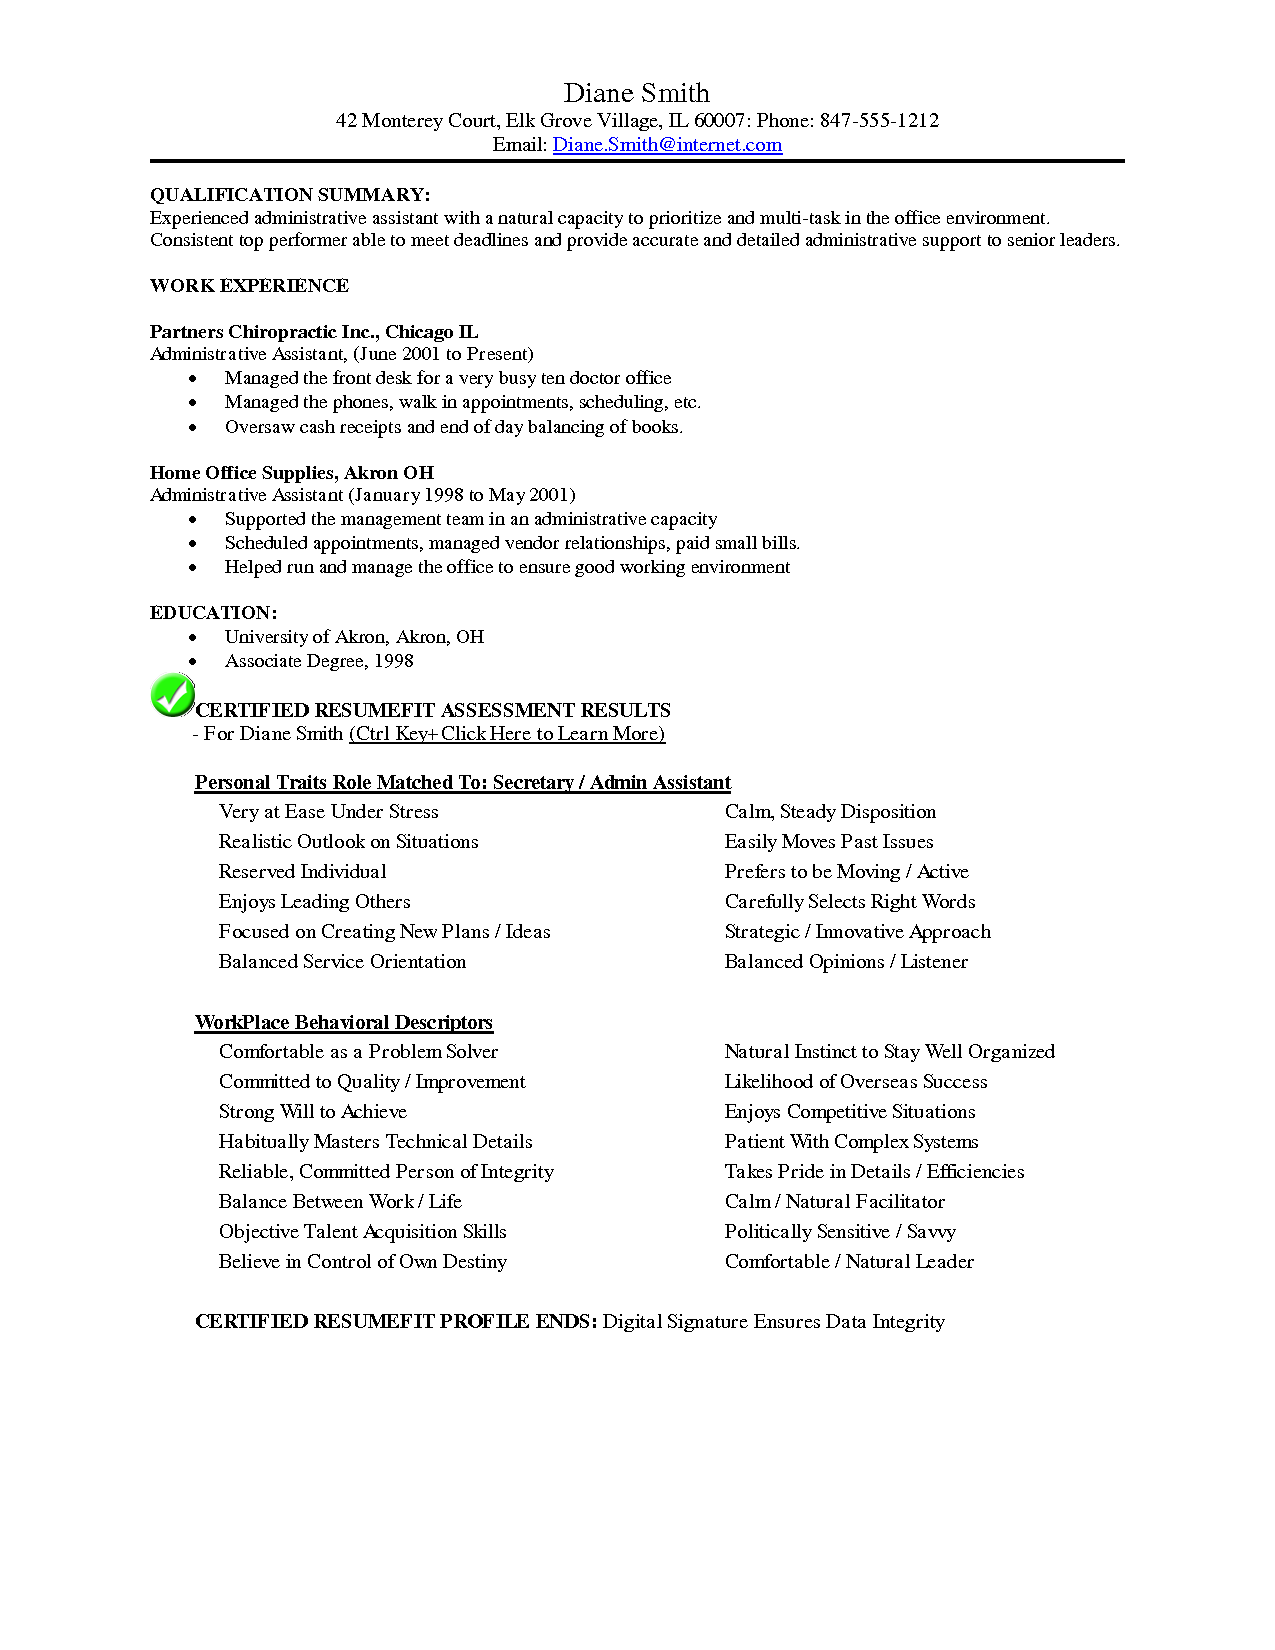 Resume Template Ms Word Chiropractic Resume Example  Resumes  Pinterest  Resume